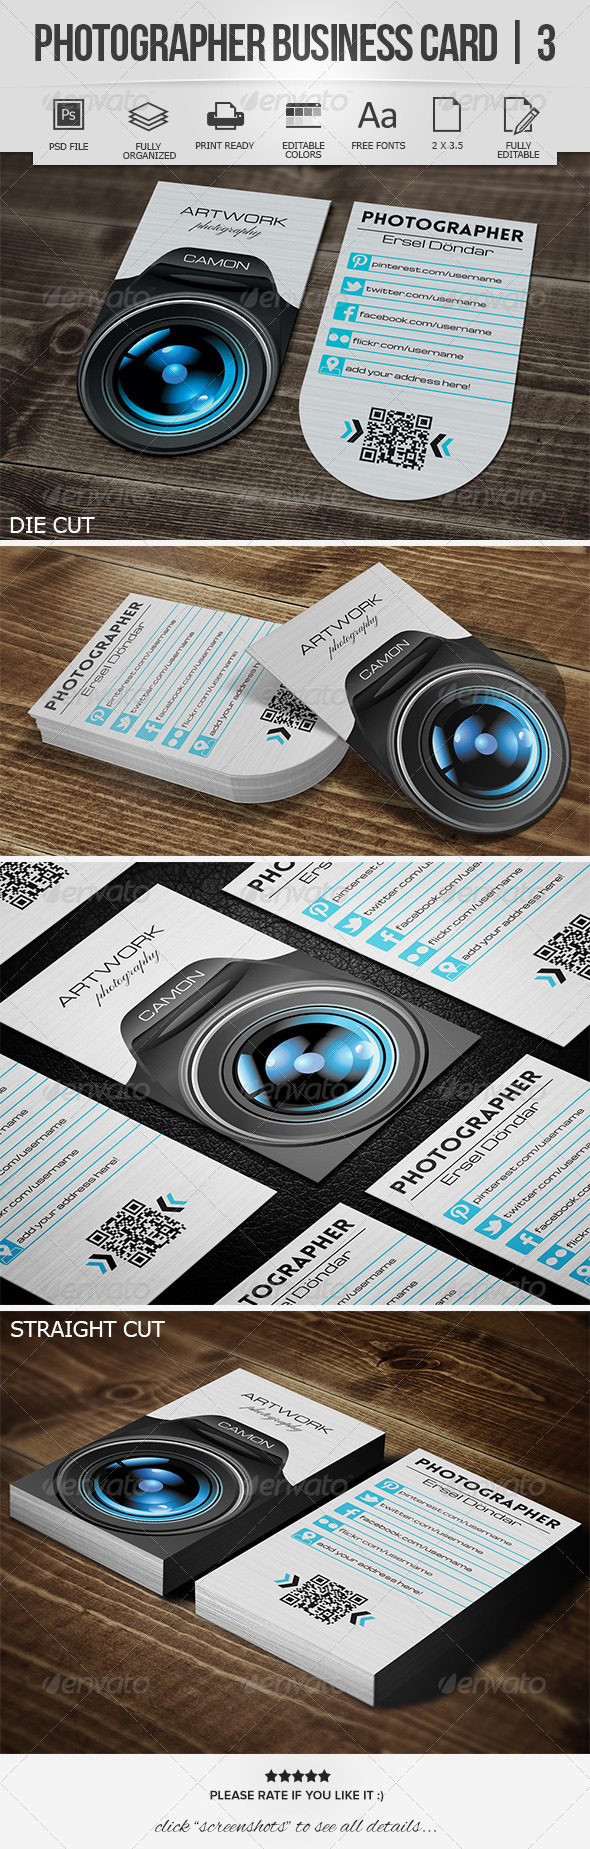 GraphicRiver Photographer Business Card 3 7687962